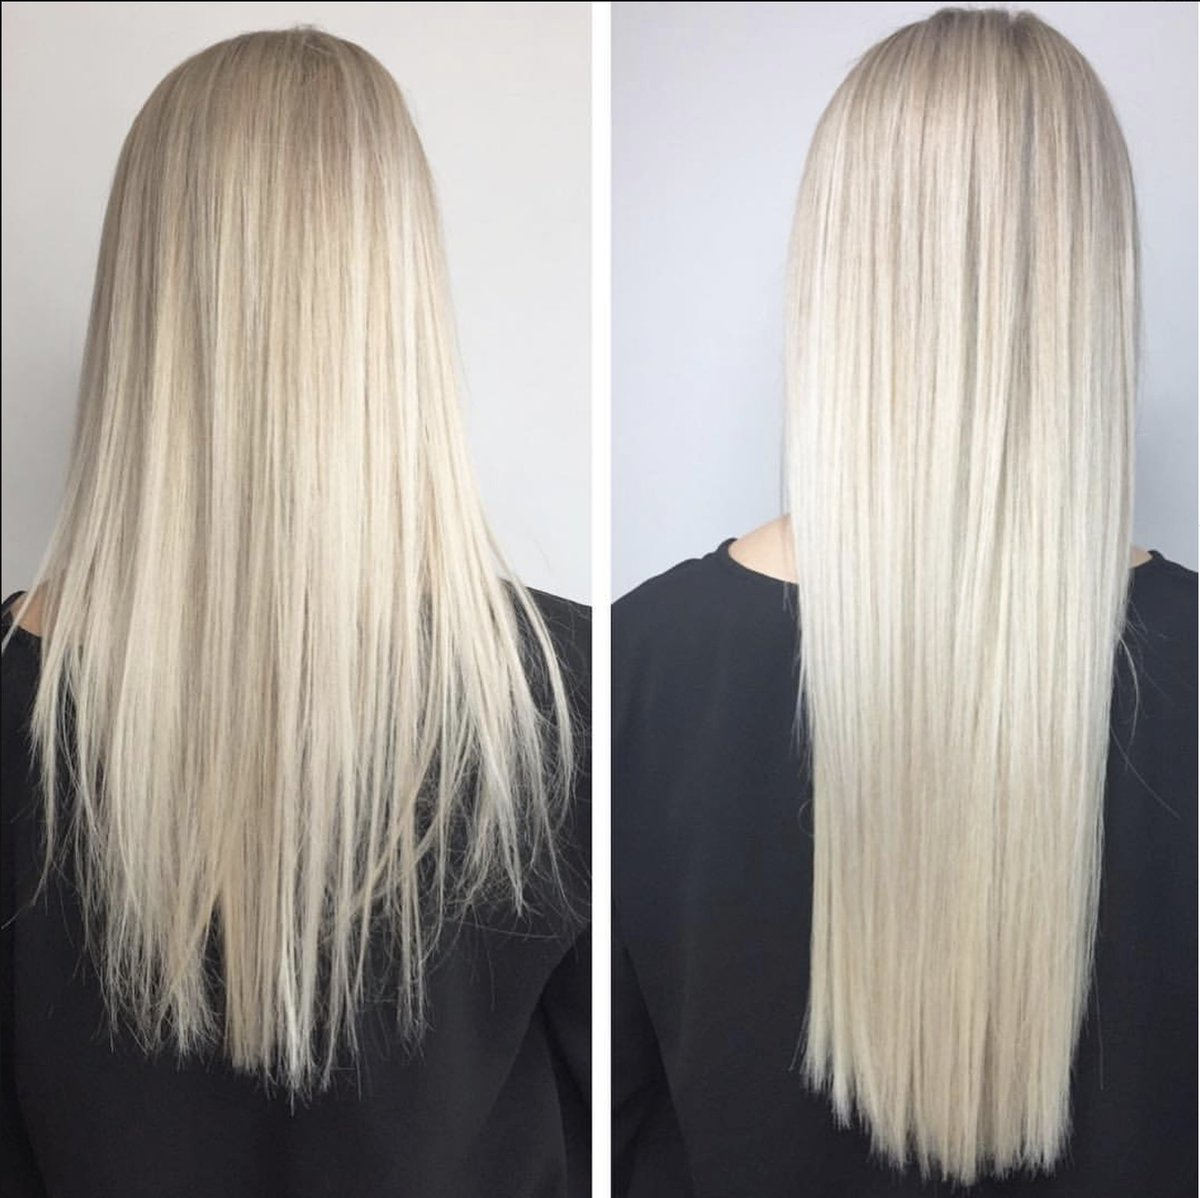 Great Lengths Canada On Twitter Ice Blonde Transformation Using